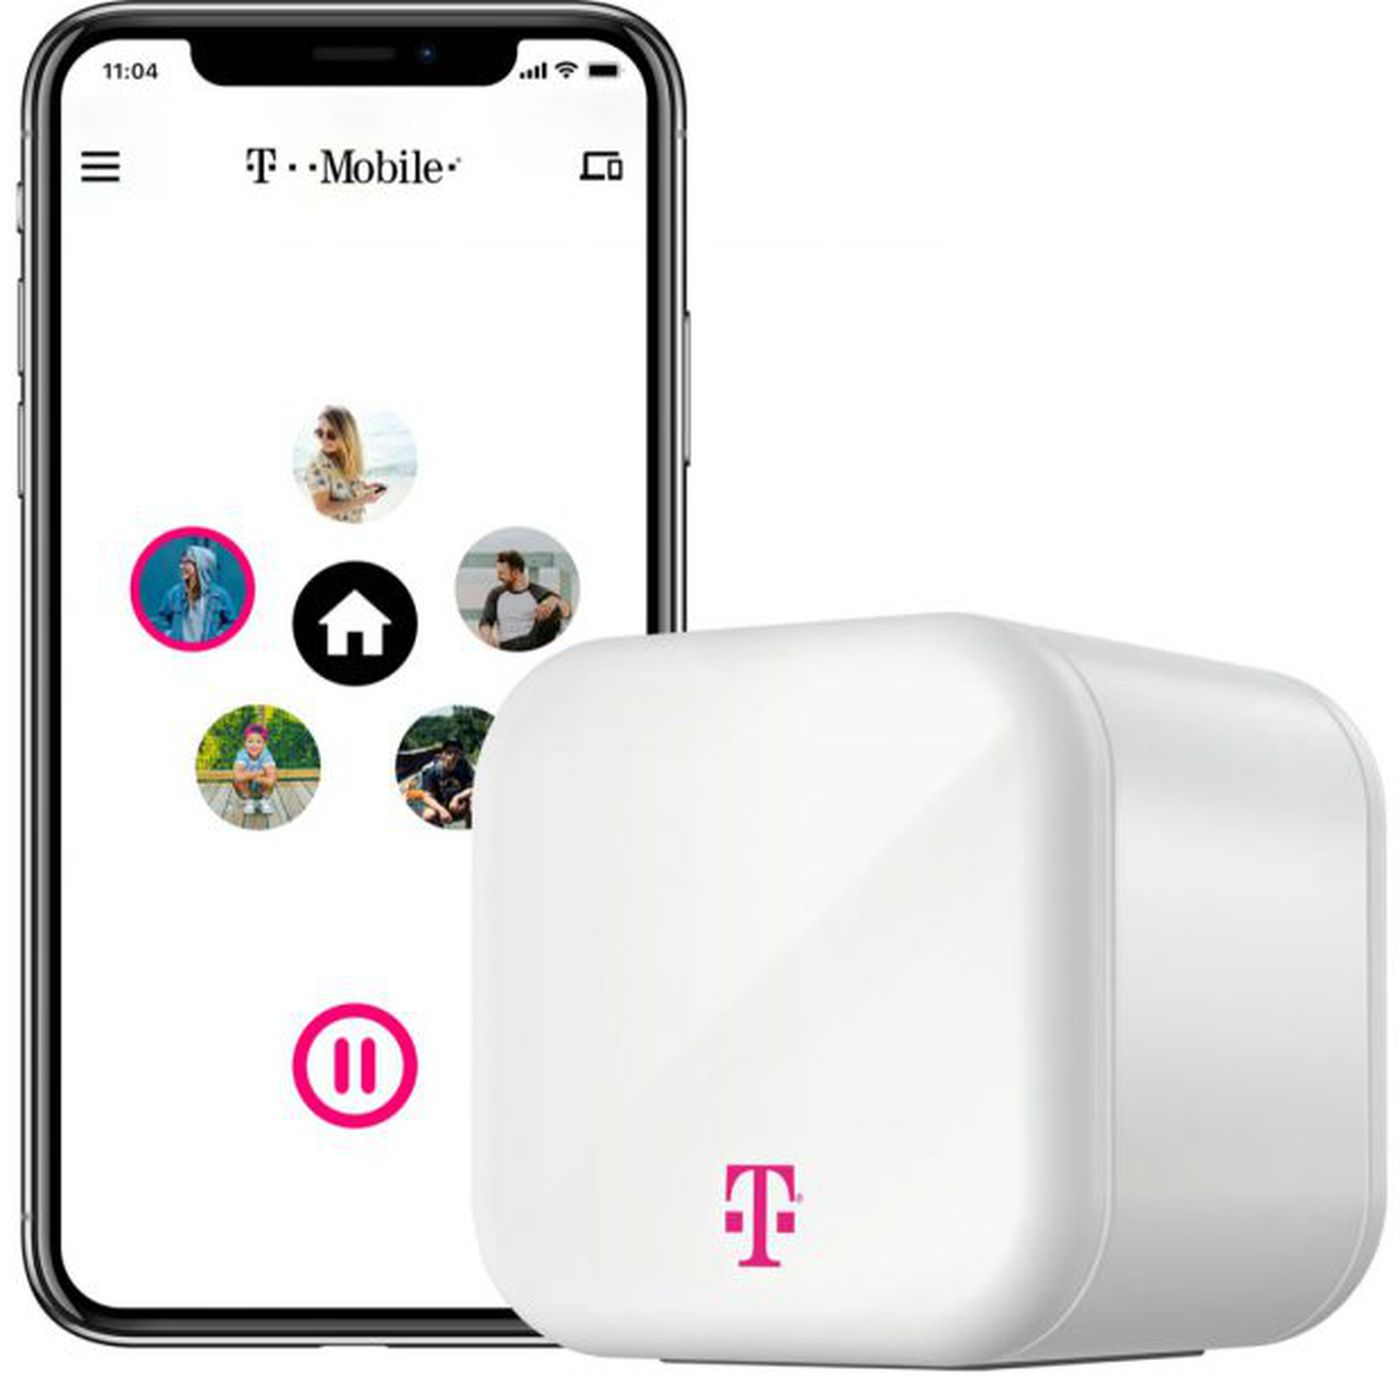 T-Mobile introduces new FamilyMode app and base station for ... on t-mobile coverage map, virgin mobile 800 number service, t-mobile girl, t-mobile password recovery, t-mobile bill, t-mobile usa company, t-mobile g2, t-mobile add minutes, t-mobile homepage, t-mobile at walmart special, t-mobile store, t-mobile specials offers, t-mobile hotspot account, t-mobile global coverage, t-mobile graph, t-mobile logo, t-mobile cell account, t-mobile login, t-mobile my account, t-mobile newsroom,